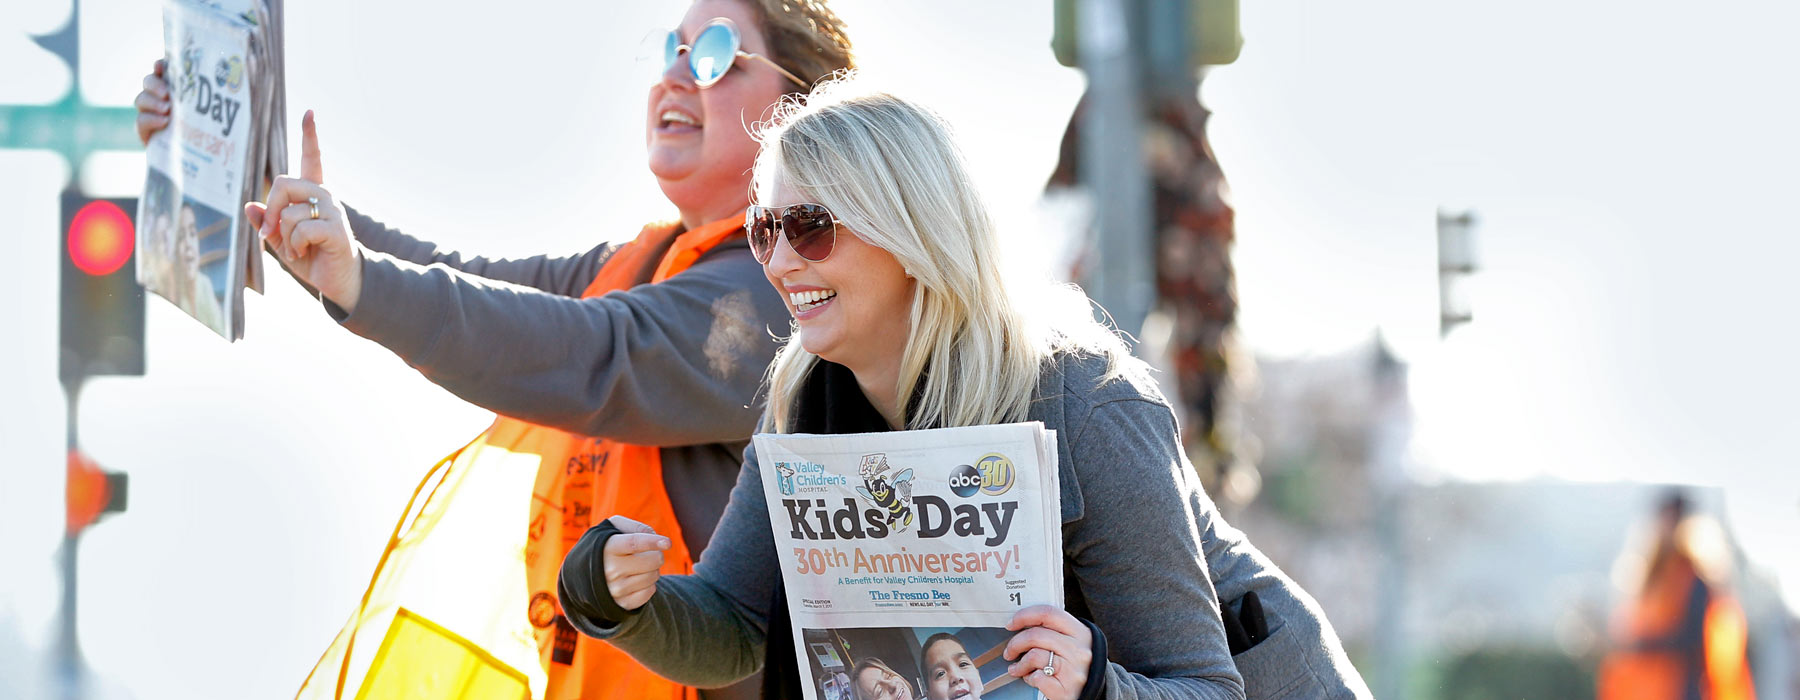 kids day news